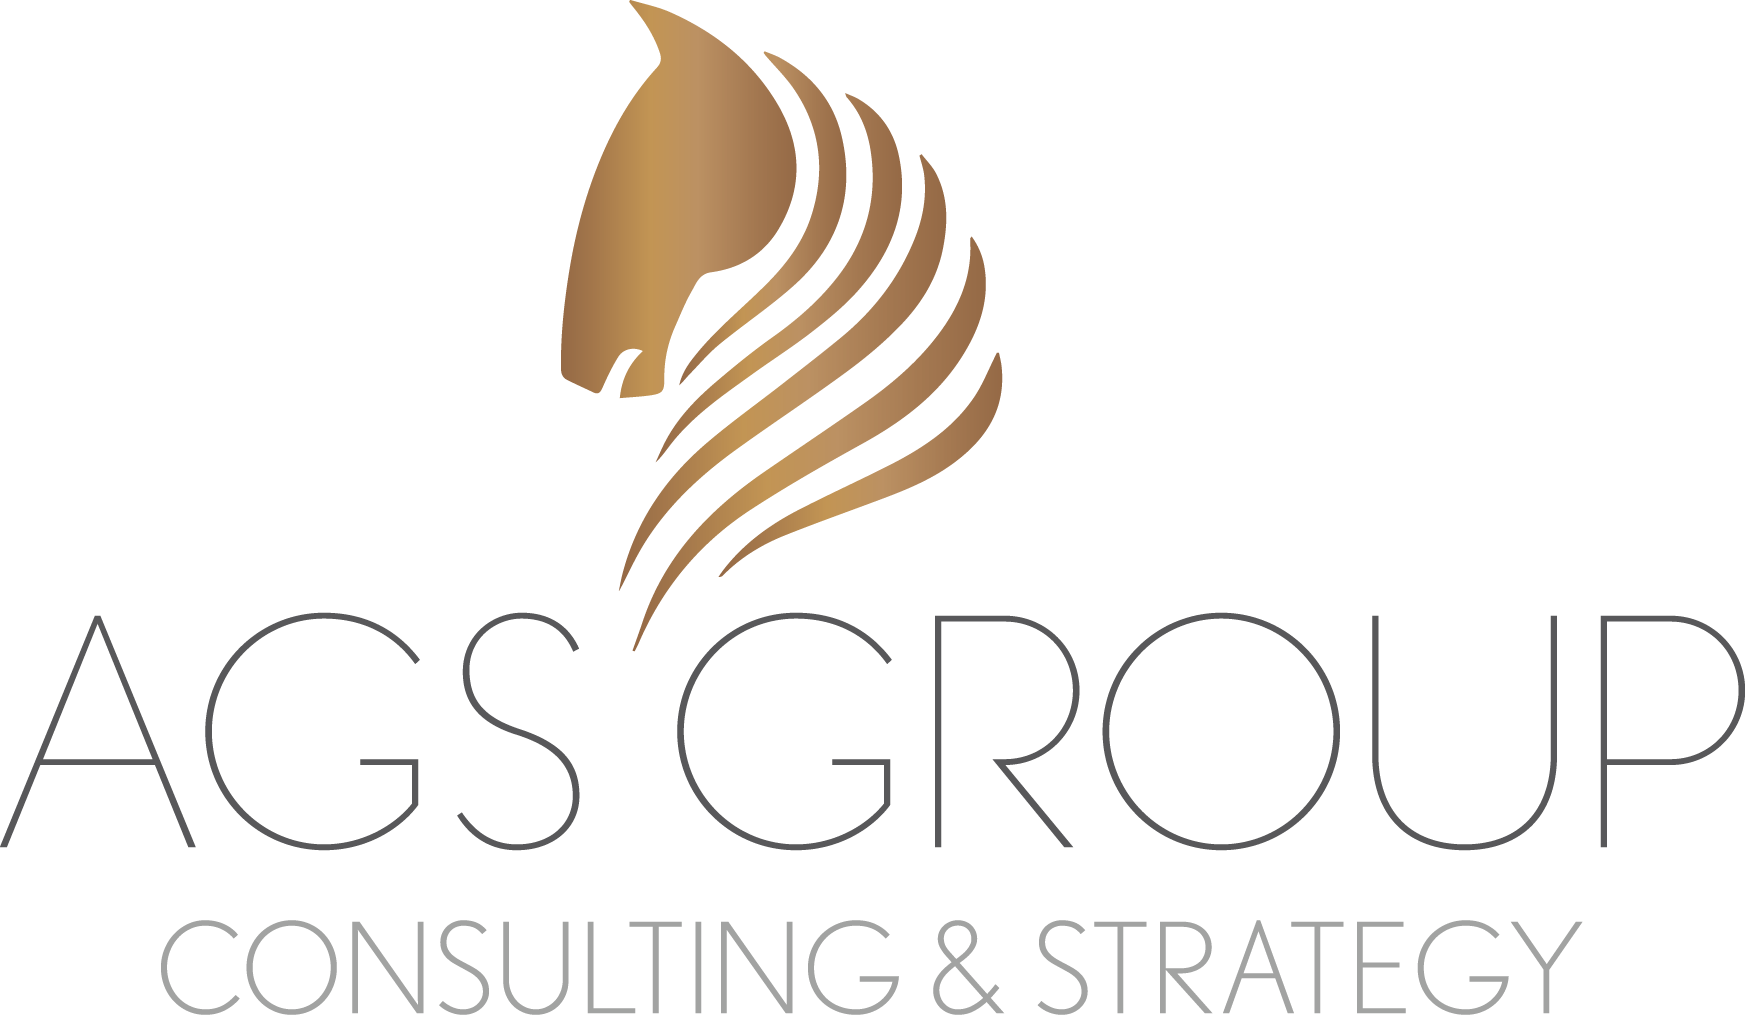 Anstiss investment groups sluggersppg serbisk valuta forex dk